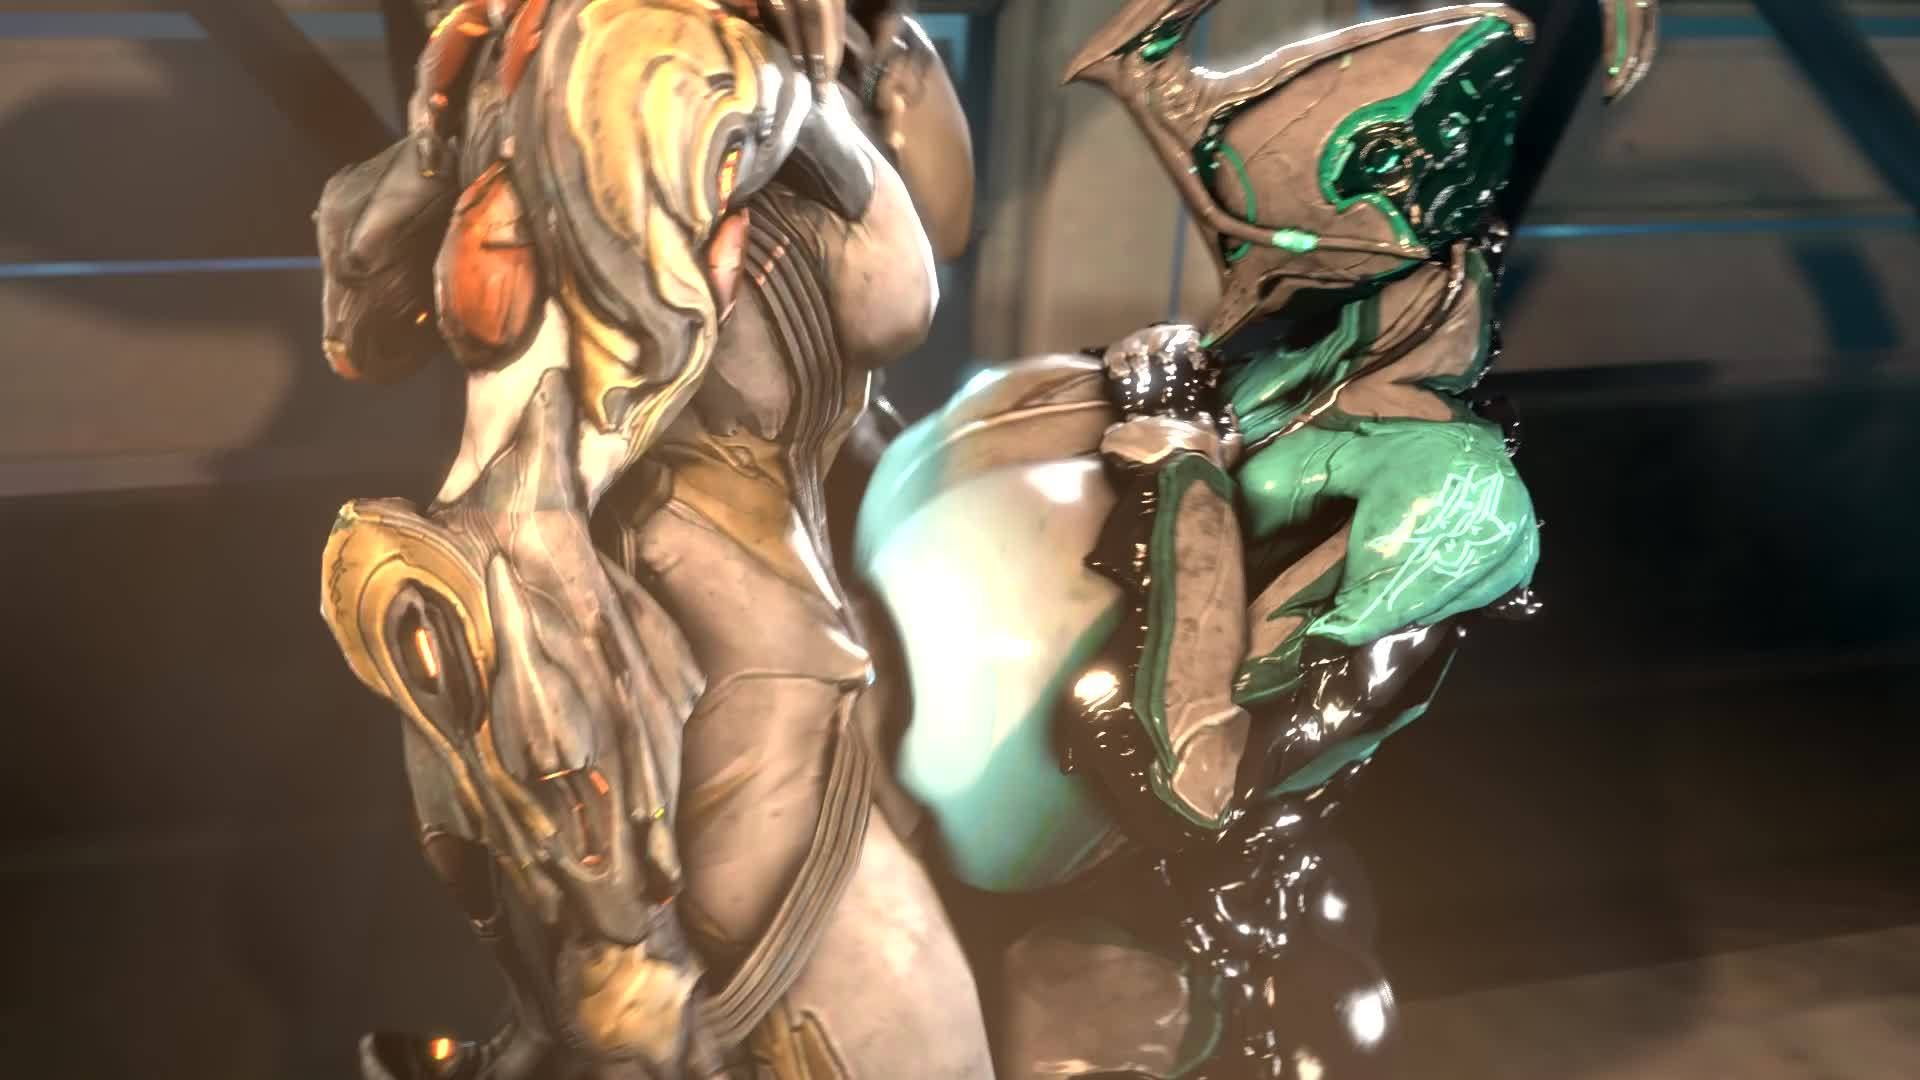 Warframe 3d porn smut video